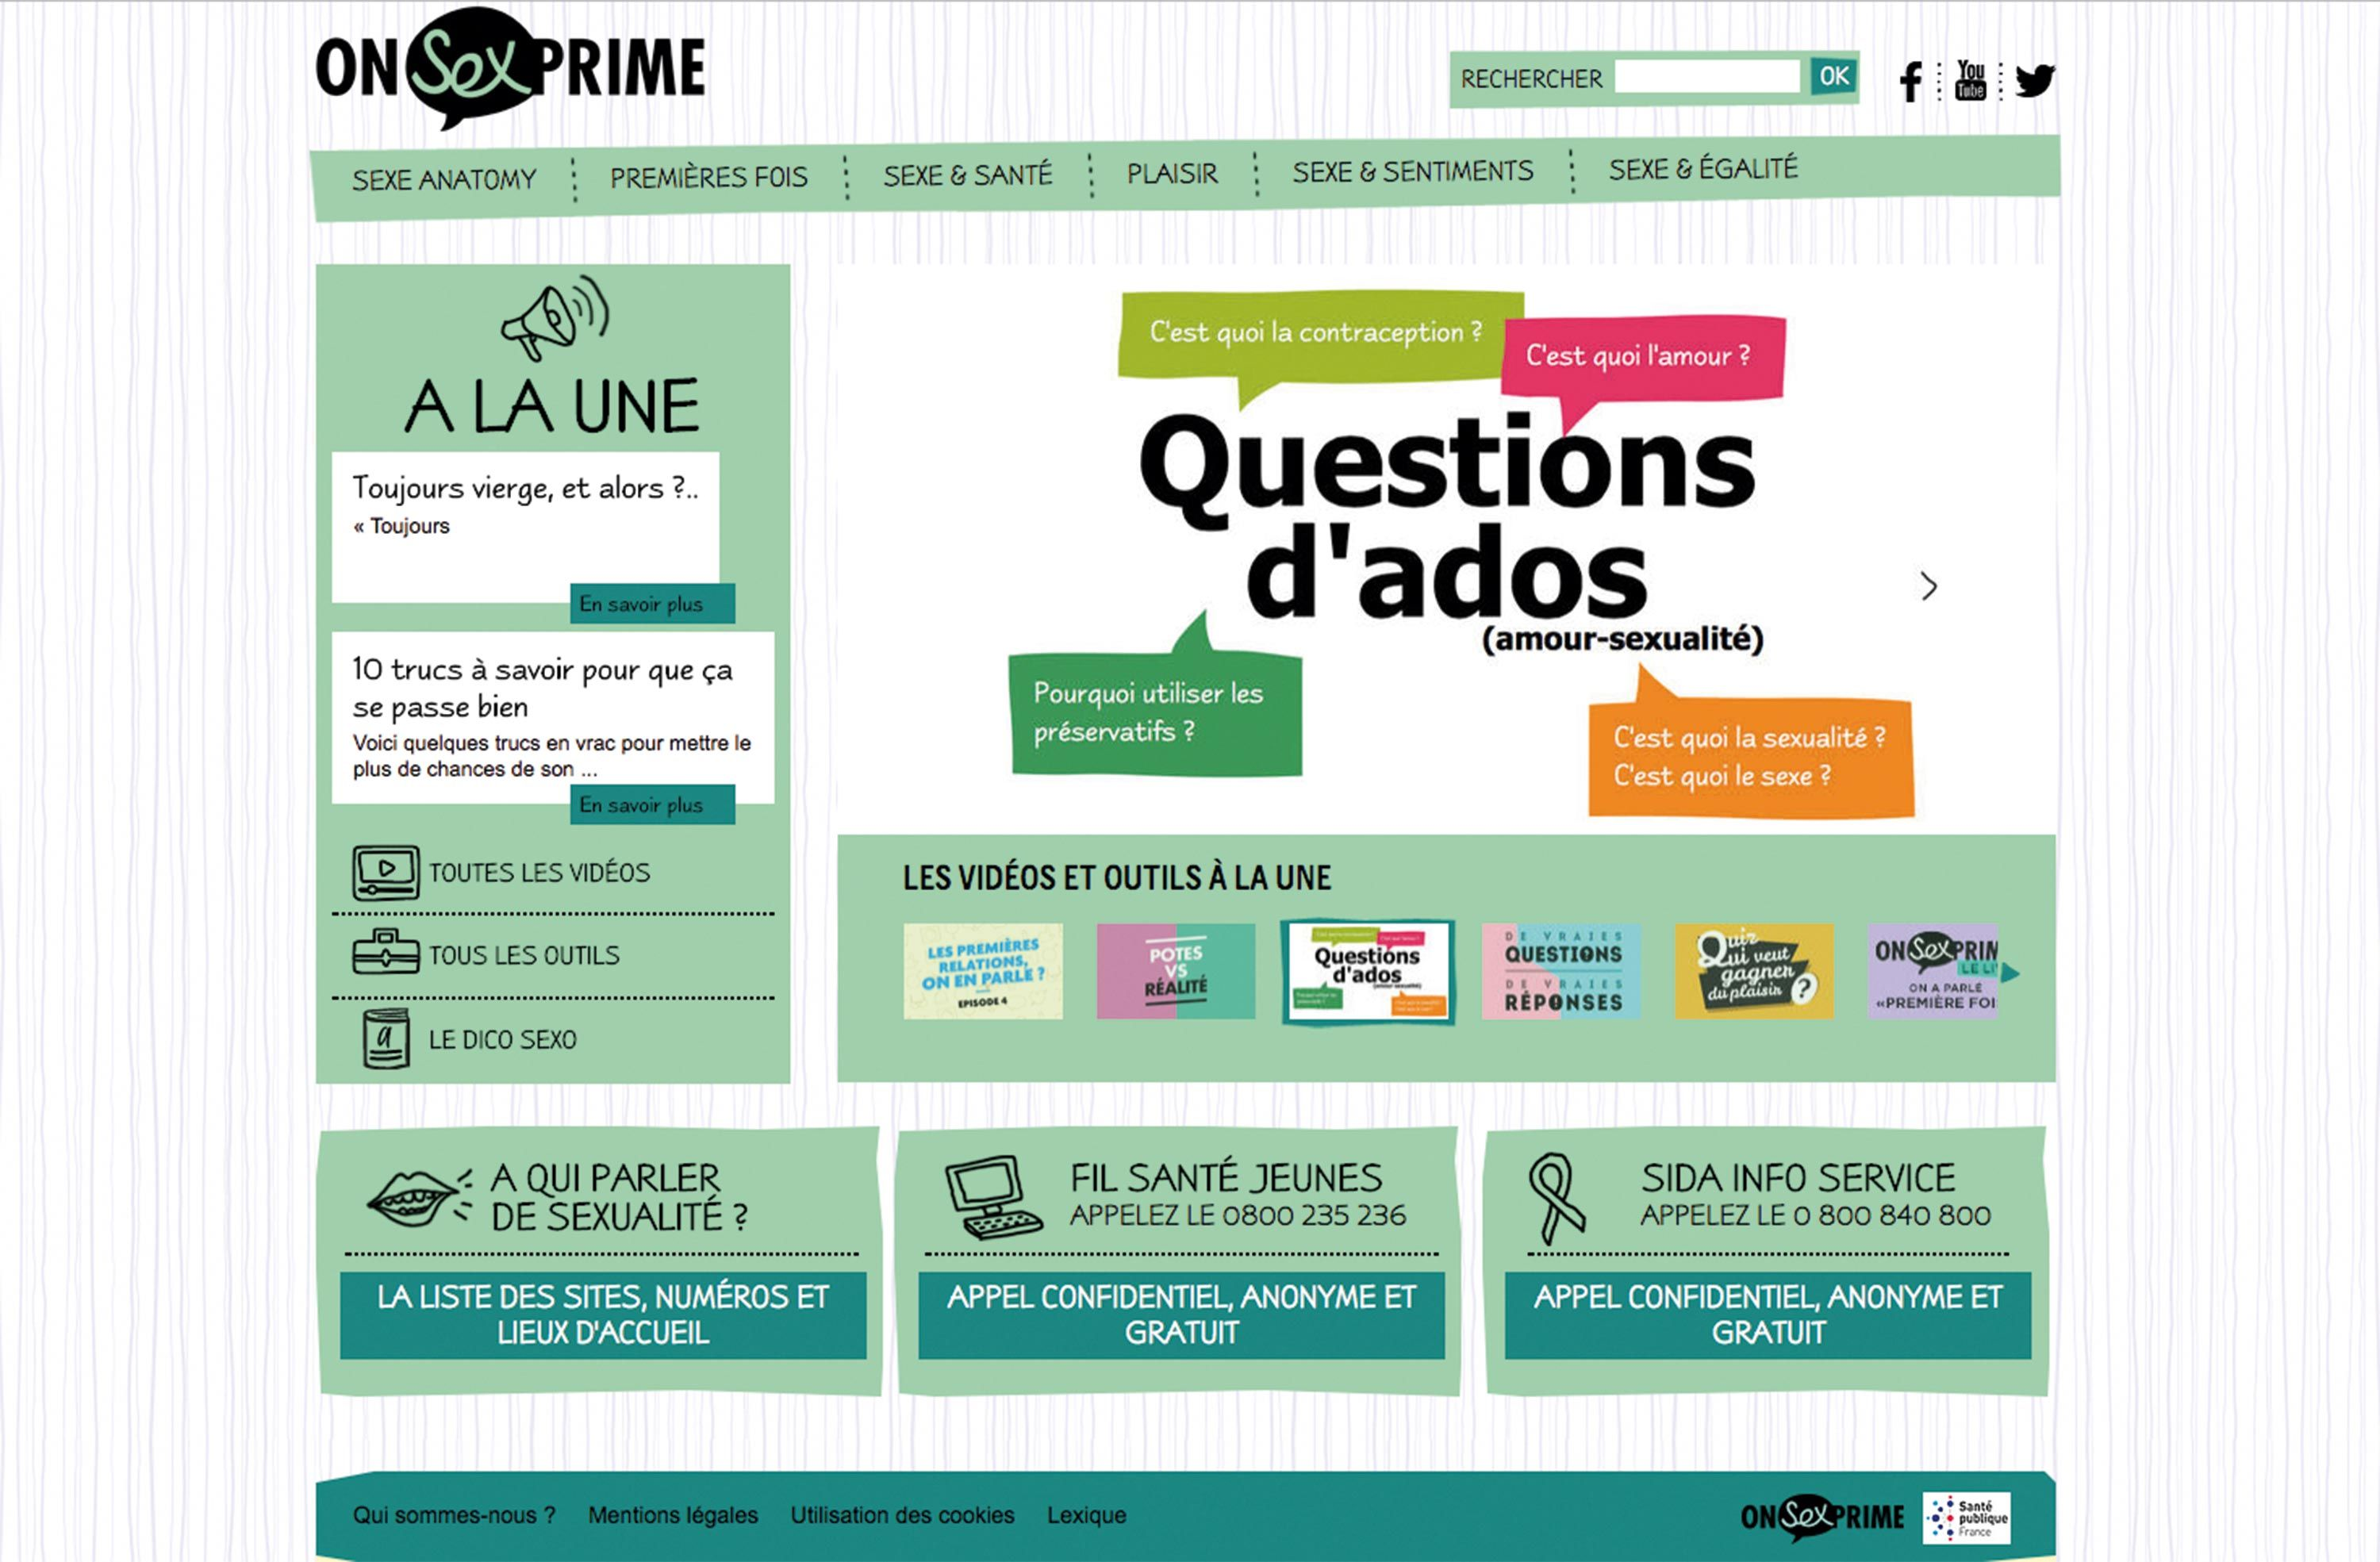 <stamp theme='svt-green1'>Doc. 1</stamp> Le site internet onsexprime.fr.